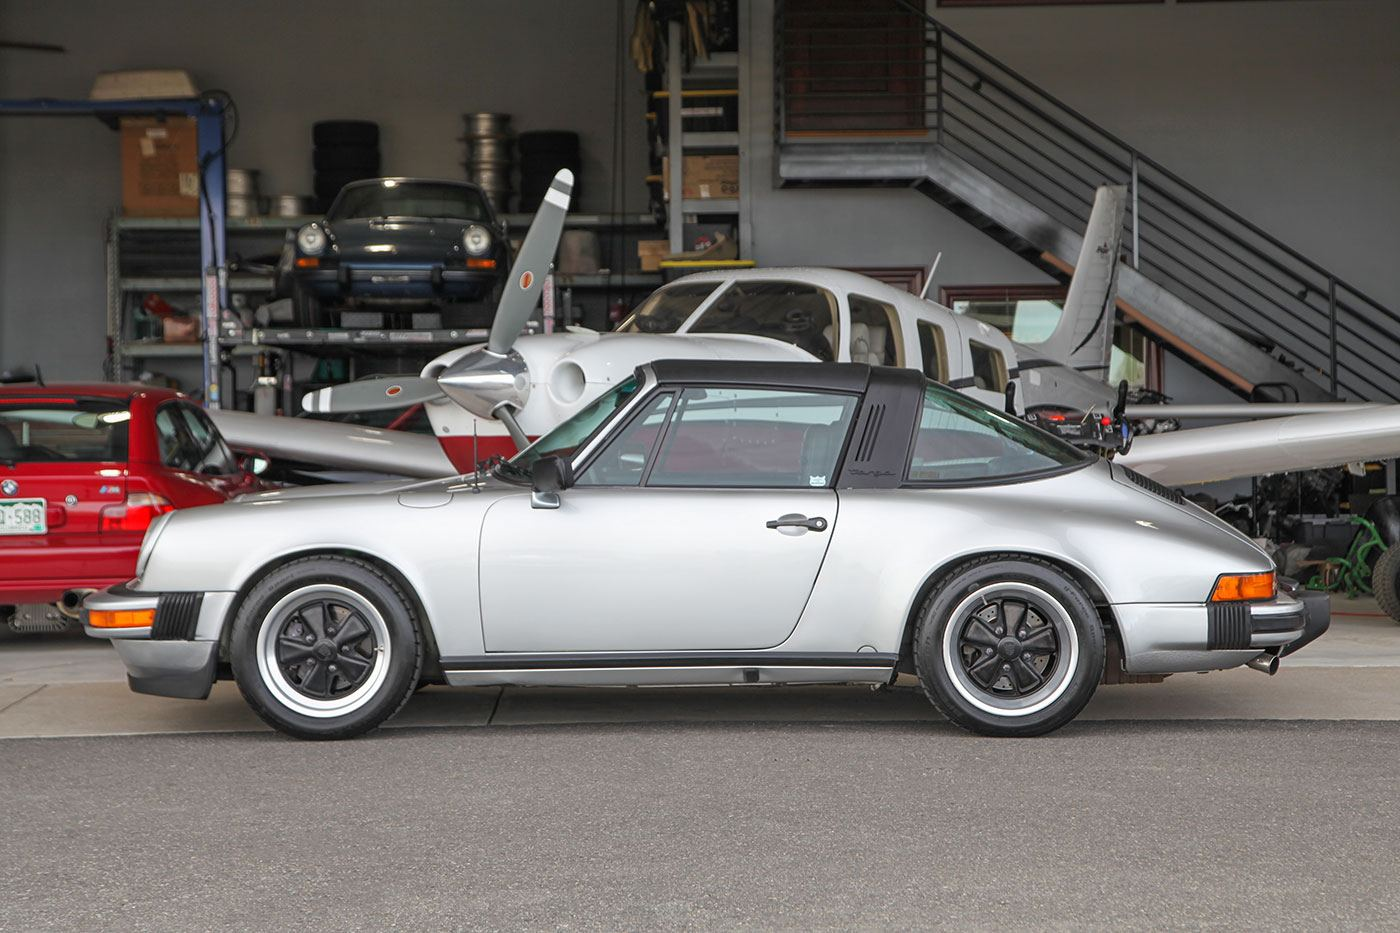 1978 Porsche 911SC Targa exterior photo